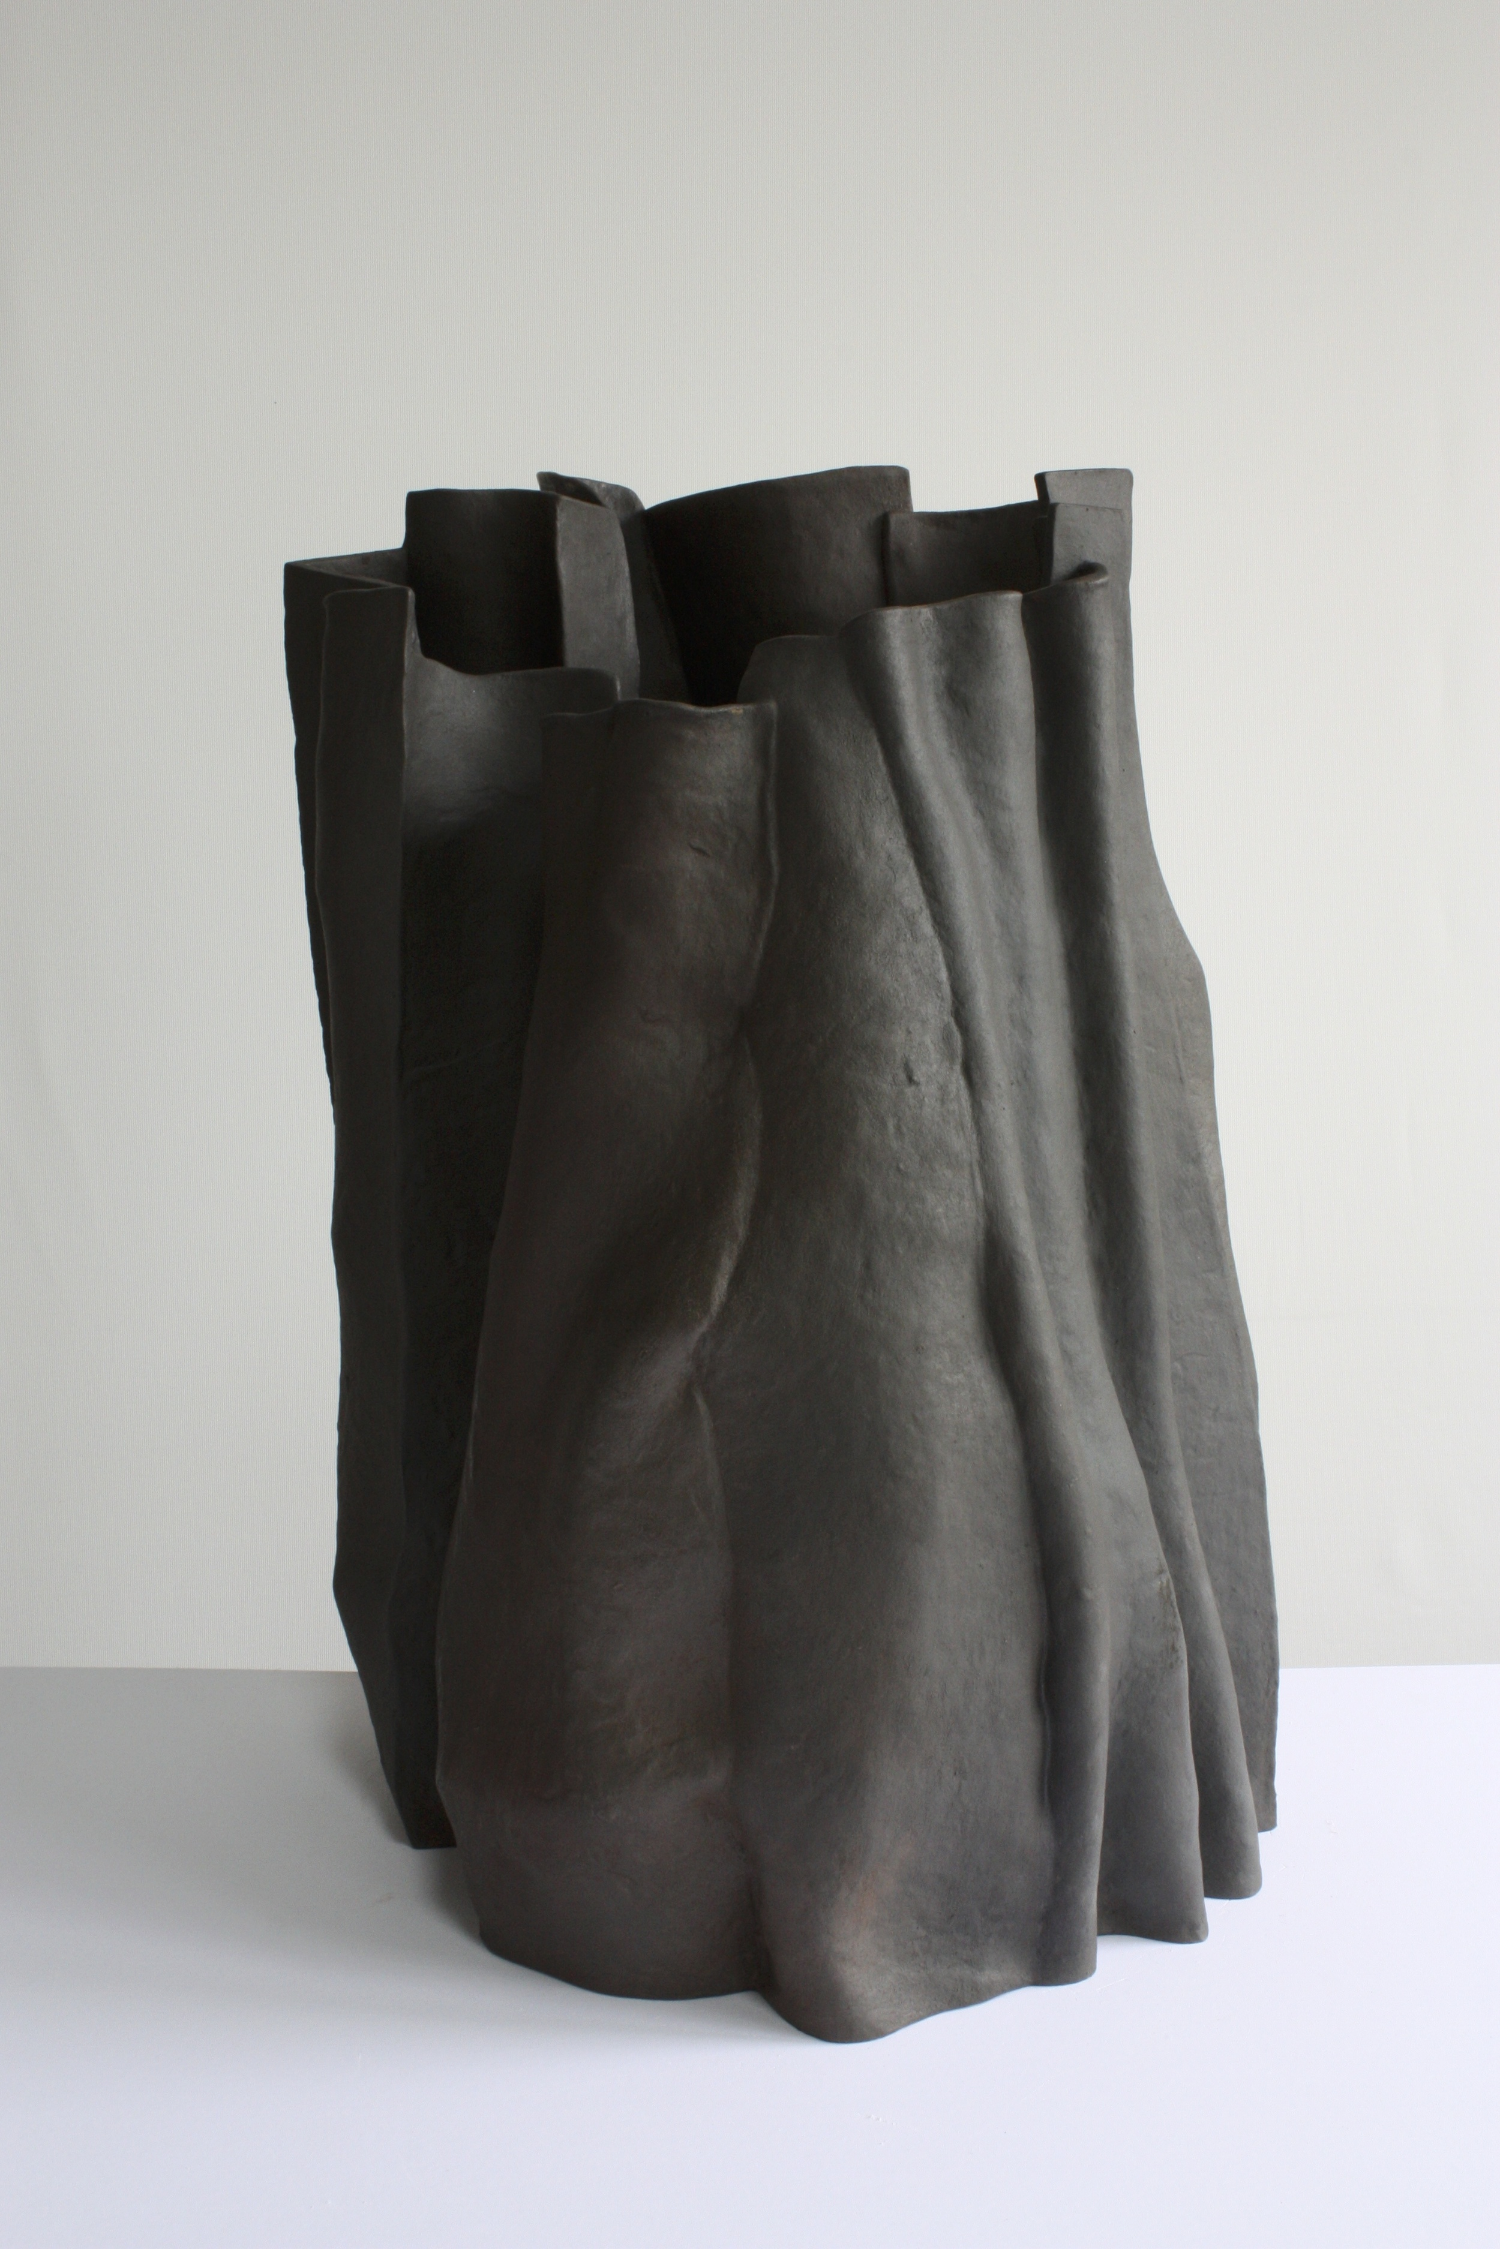 Leadways, 2009, 45cm high